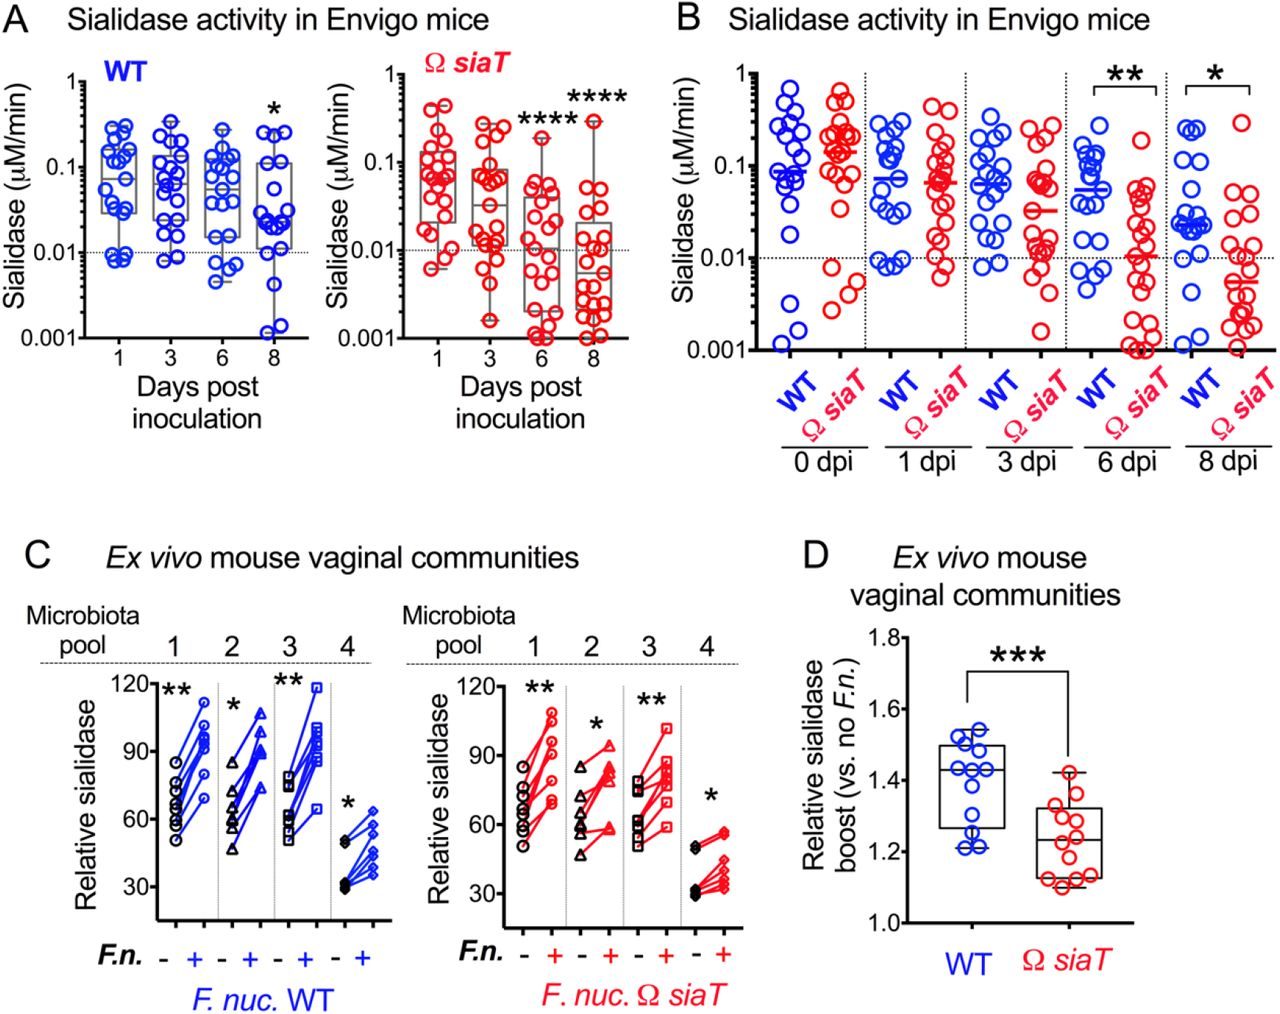 """Sialidase activity in ex vivo cultured vaginal microbial communities from Envigo mice increases in presence of F. nucleatum (A) Sialidase activity in vaginal washes from 1 to 8 dpi from individual animals purchased from Envigo, estrogenized, and inoculated with either WT or ΩsiaT F. nucleatum . Data at later time points were compared to day 1 values using Friedman test, along with correction for multiple planned comparisons using Dunn's test. (B) Same experiment and data as shown in A but analyzed to compare between WT or ΩsiaT- inoculated animals at each time point using the Mann-Whitney test. Data in A and B represent combined data from two independent experiments. Data points with negative values were set to 0.001 to represent them on the log scale. (C) Sialidase activity in microbiota pools from Envigo mice. Communities were cultured in the presence or absence of F. nucleatum ( F. nuc. ) WT or ΩsiaT . Each """"microbiota pool"""" consists of a cultured vaginal community from pooled vaginal wash of 4-5 co-housed mice. Wilcoxon paired-sign rank test was used for pairwise comparison of sialidase activity in each cultured microbiome compared to the identical microbiome cultured in the presence of F. nucleatum . Data shown is combined from 4 independent biological replicates with 7-8 technical replicates for each microbiota pool. (D) Same experimental data as in C . Data shown is combined from all microbiota pools for each group and analyzed to allow for comparison of the relative sialidase boost between no added F. nucleatum ( F.n. ) versus addition of WT or ΩsiaT . A statistical comparison between the two groups was performed using Wilcoxon matched-pairs signed rank test. Data shown is combined from 3 independent biological replicates. Line in the bar indicates mean value. On all graphs *P"""